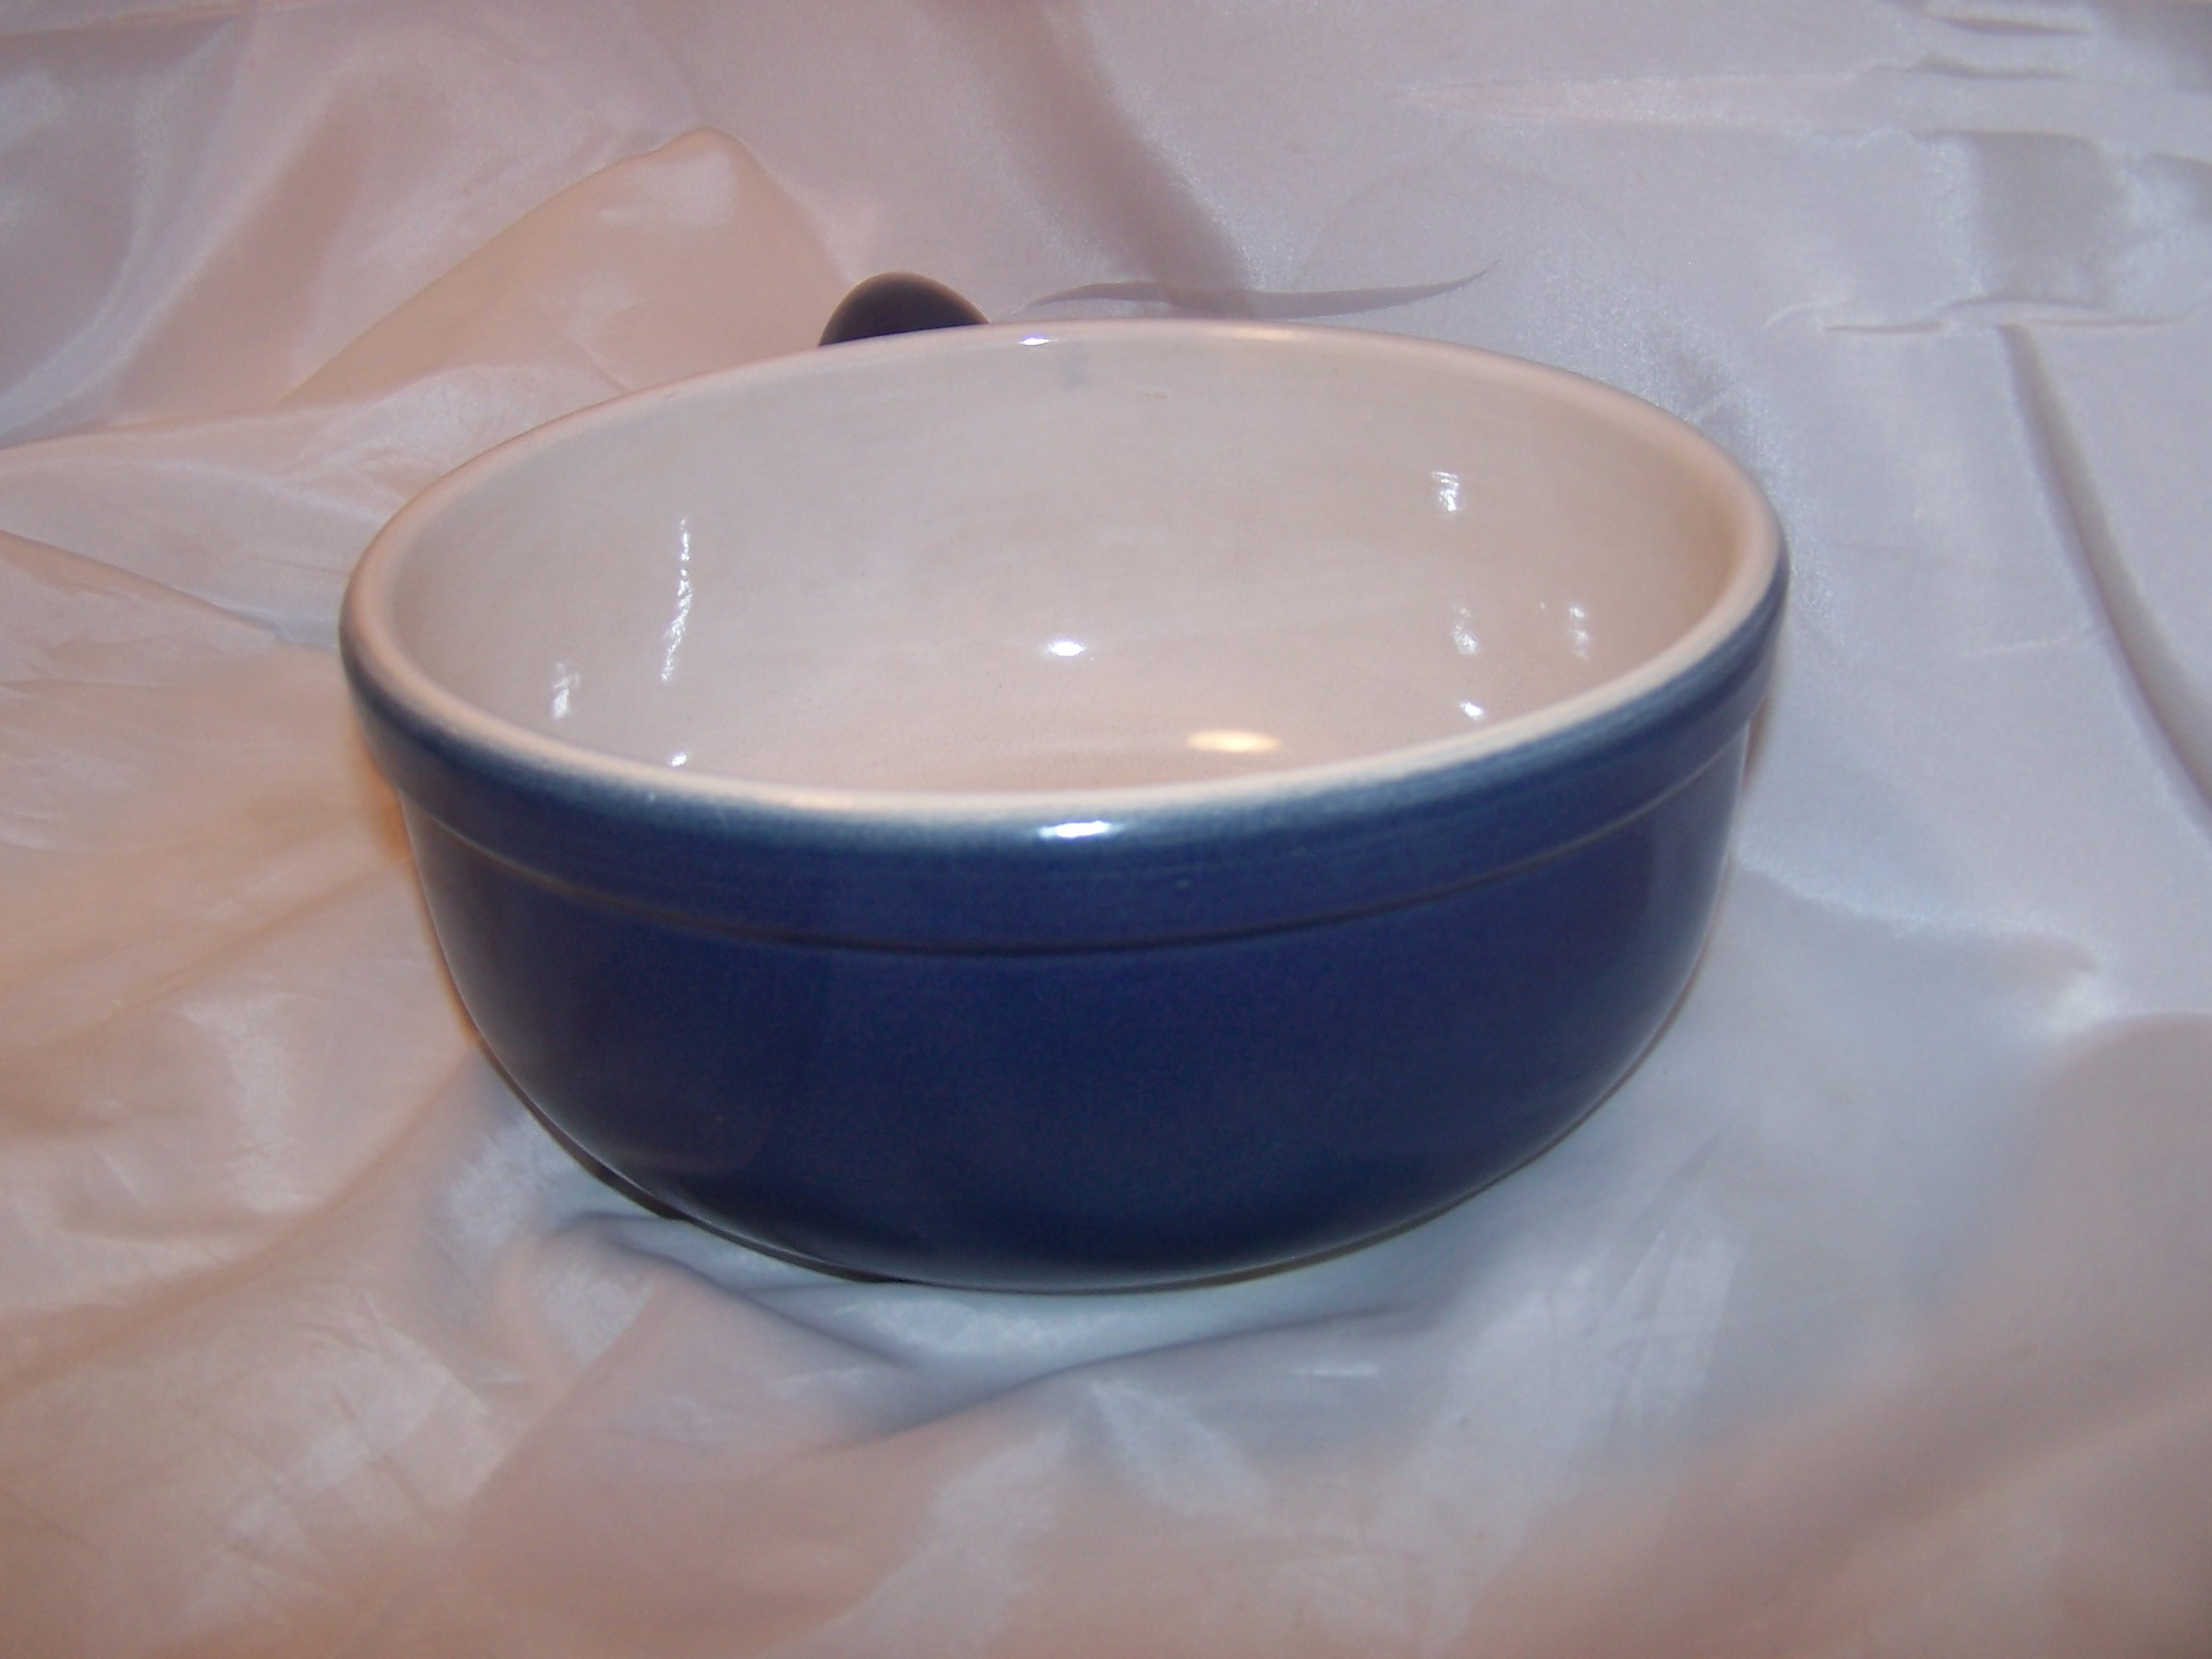 Image 3 of Cooking Pot, Cobalt Blue Microwave Stoneware, CCF, France